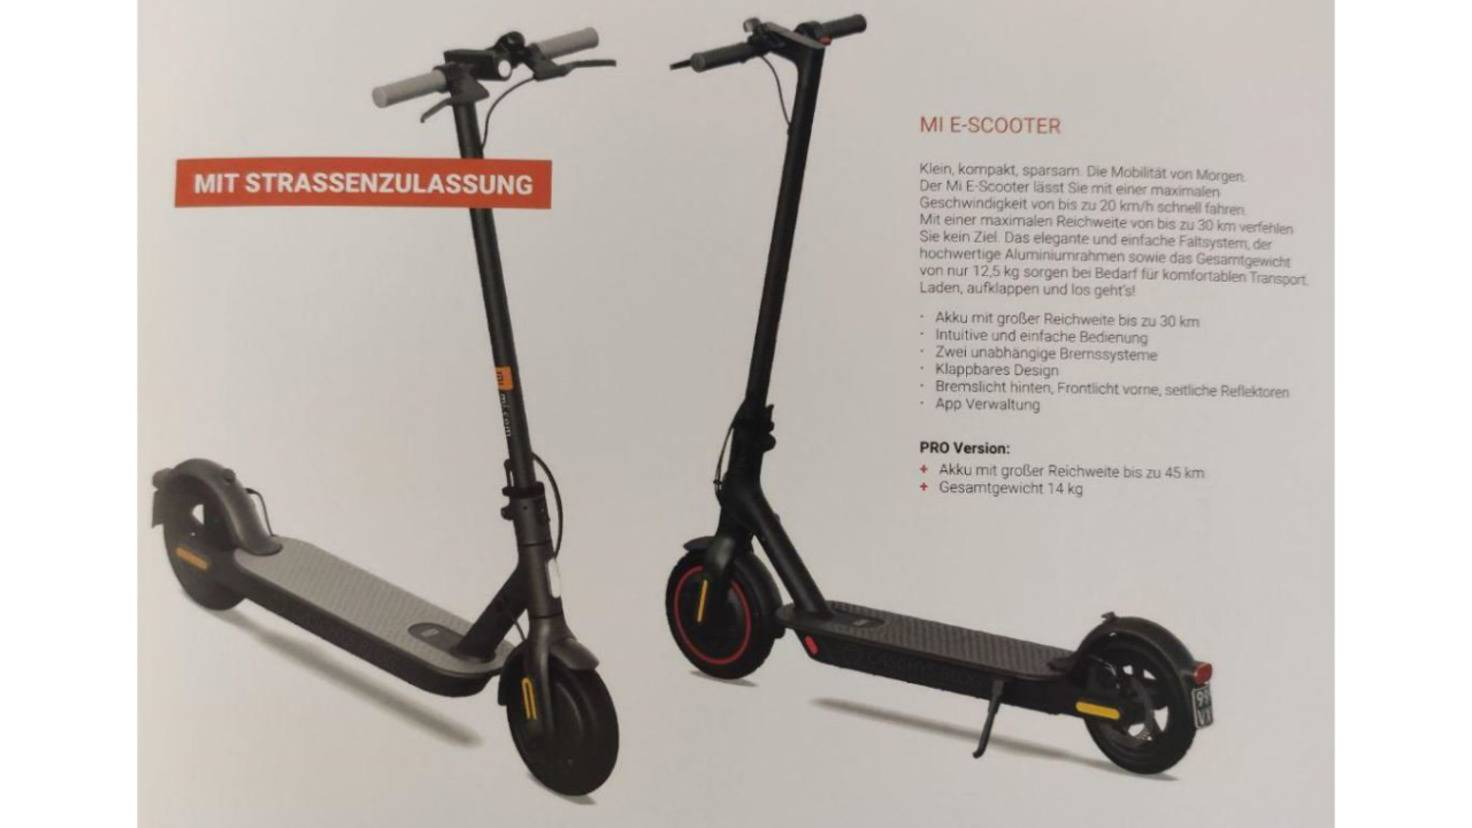 Two Mi E-Scooter models in the exhibition catalog